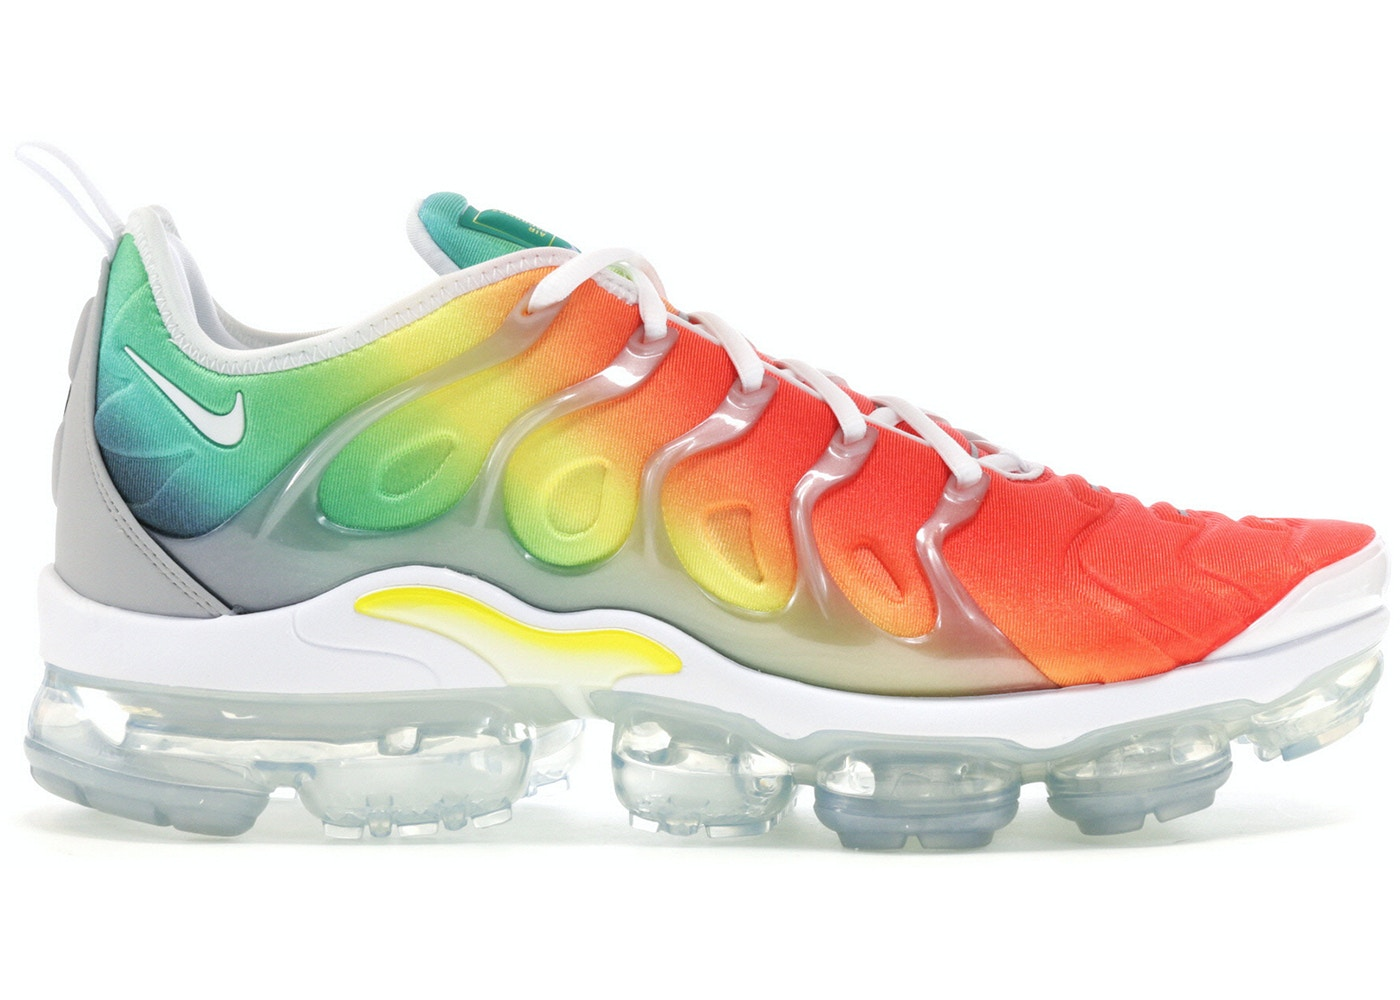 e0a44132422f3 Air VaporMax Plus Rainbow - 924453-103